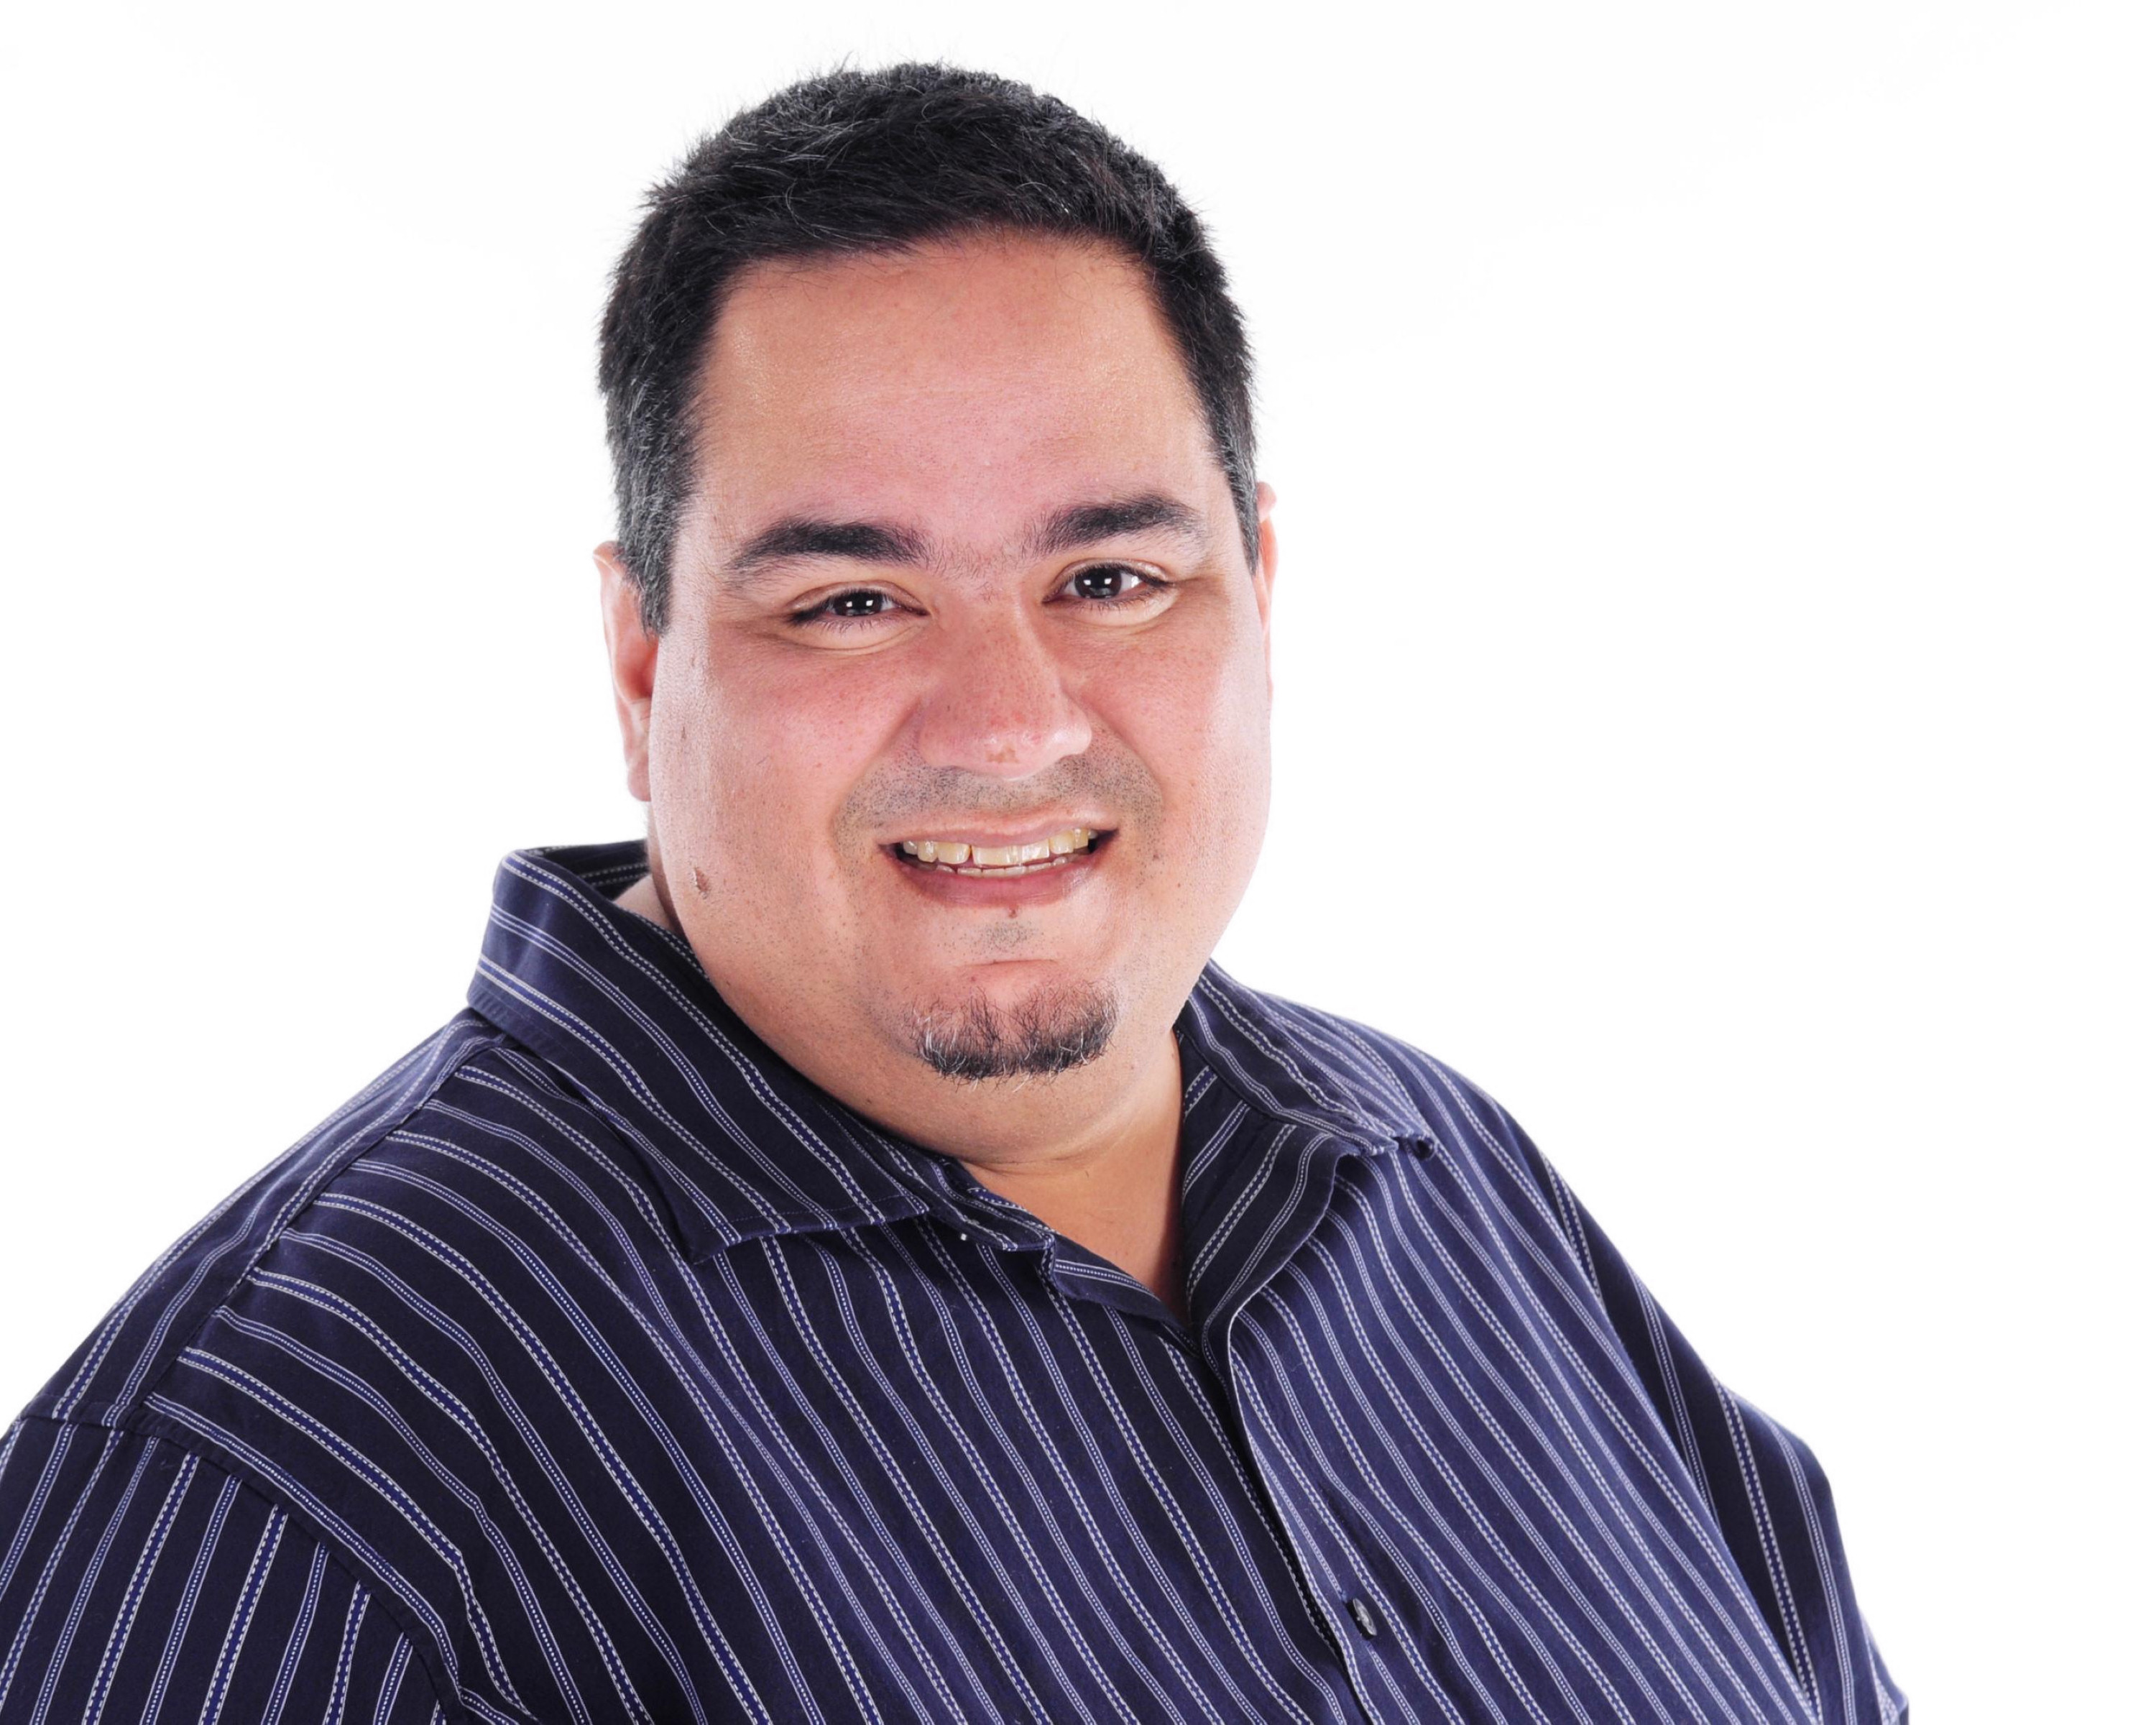 CNLP 039: How to Build a High-Performing Team from Scratch—An Interview with Chris Lema